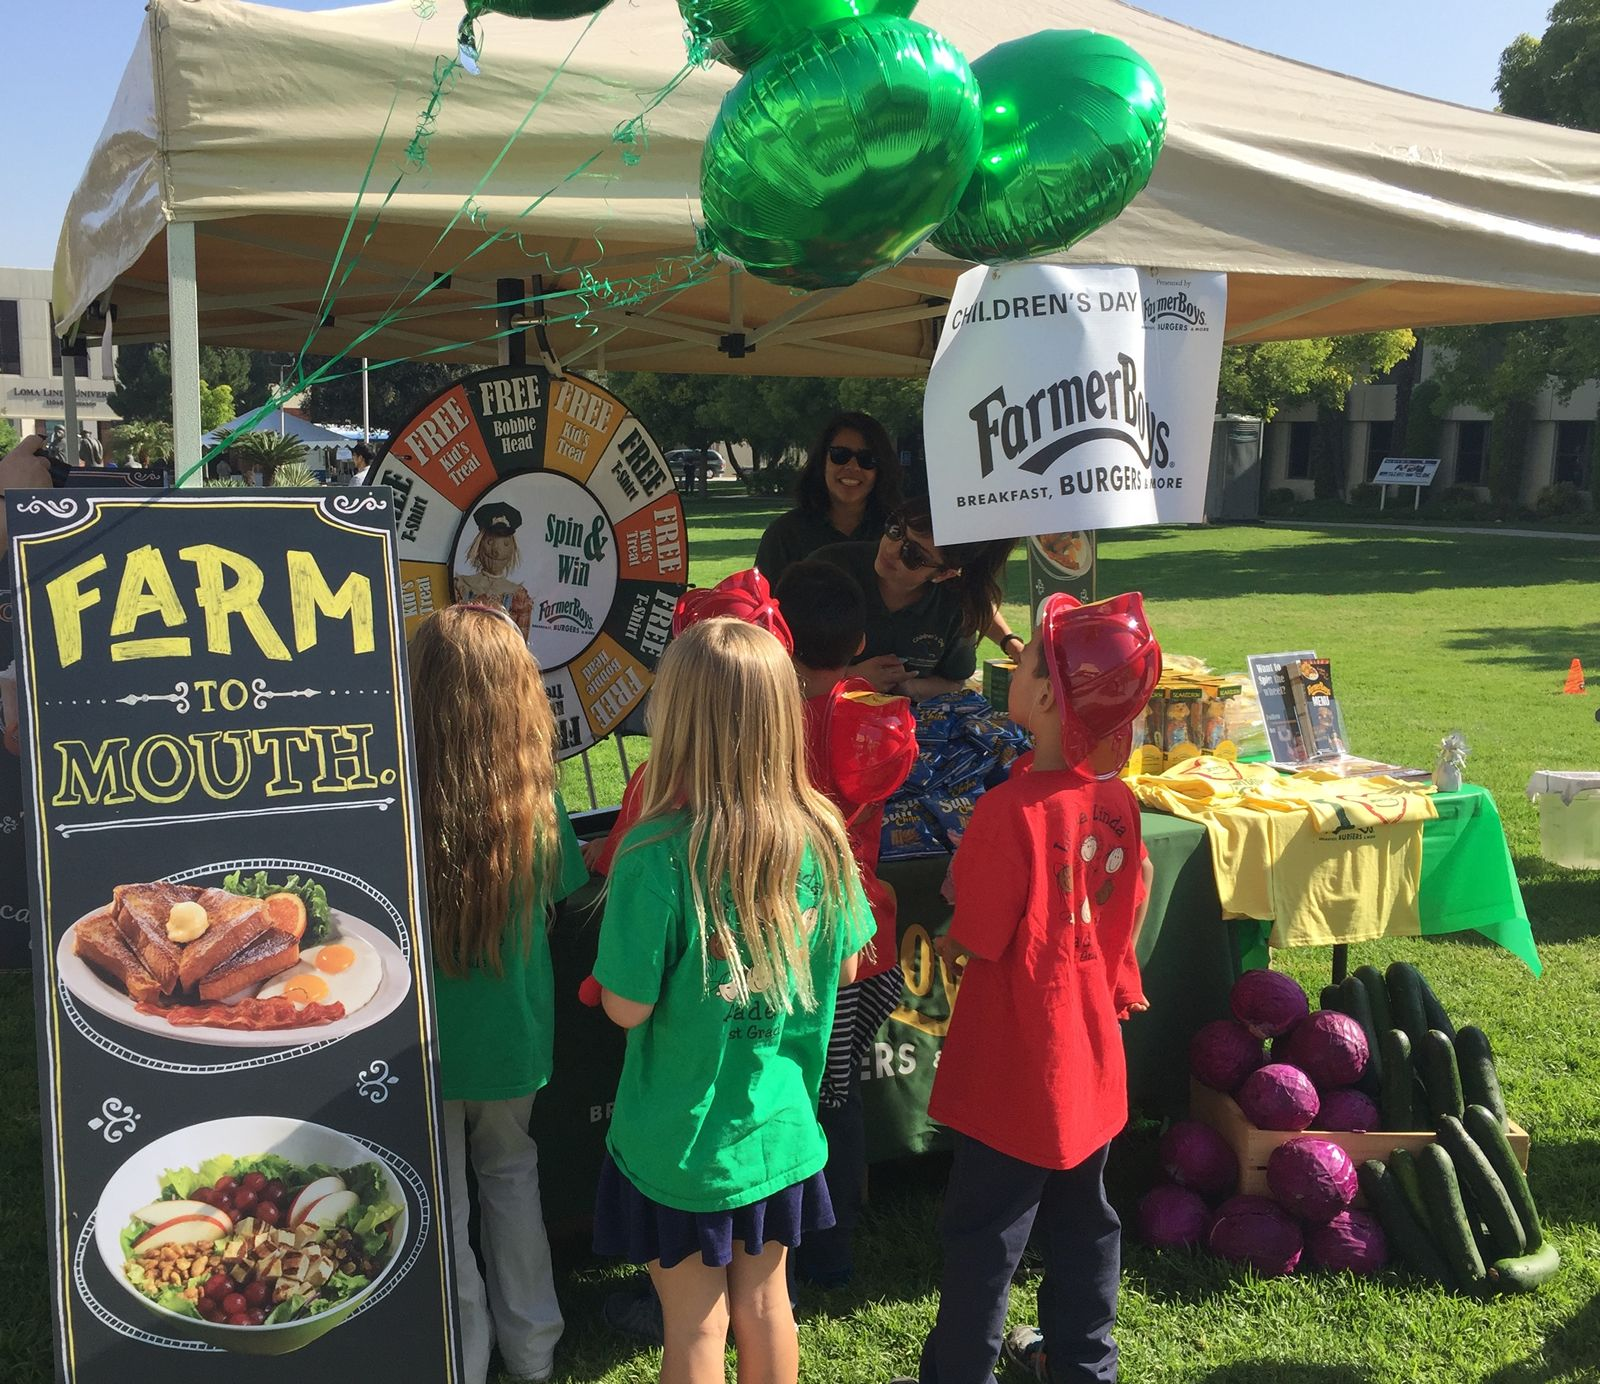 Farmer Boys is sponsoring Loma Linda University Children's Hospital's 33rd Annual Children's Day on Wednesday, May 9. The free event invites local children and their families to participate in various hands-on learning activities designed to ease nervousness about being in a hospital setting.